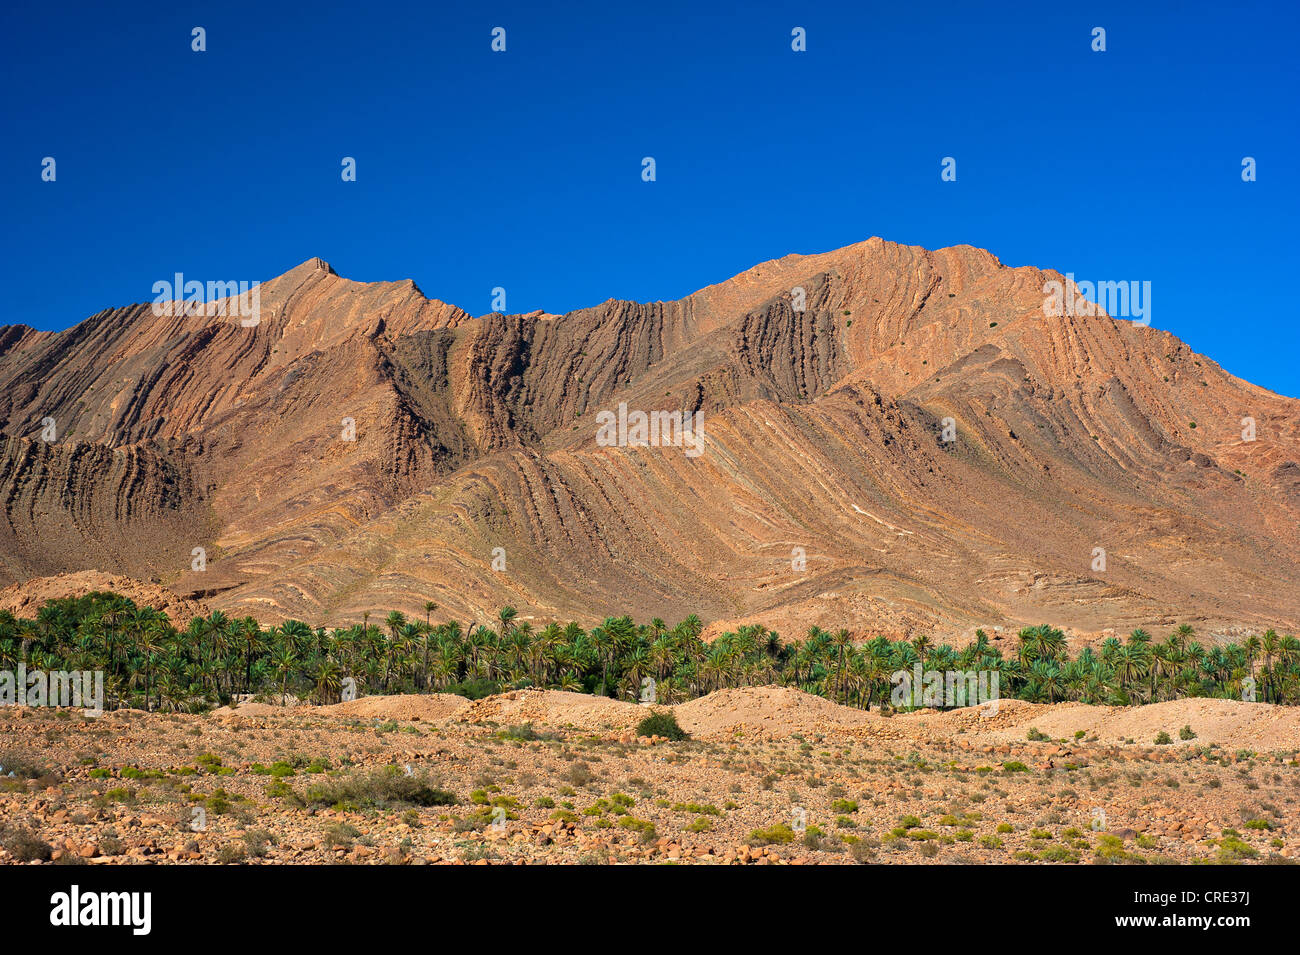 Imposing mountain landscape with eroded hillsides in the Ait Mansour Valley, date palms growing in the dry river - Stock Image